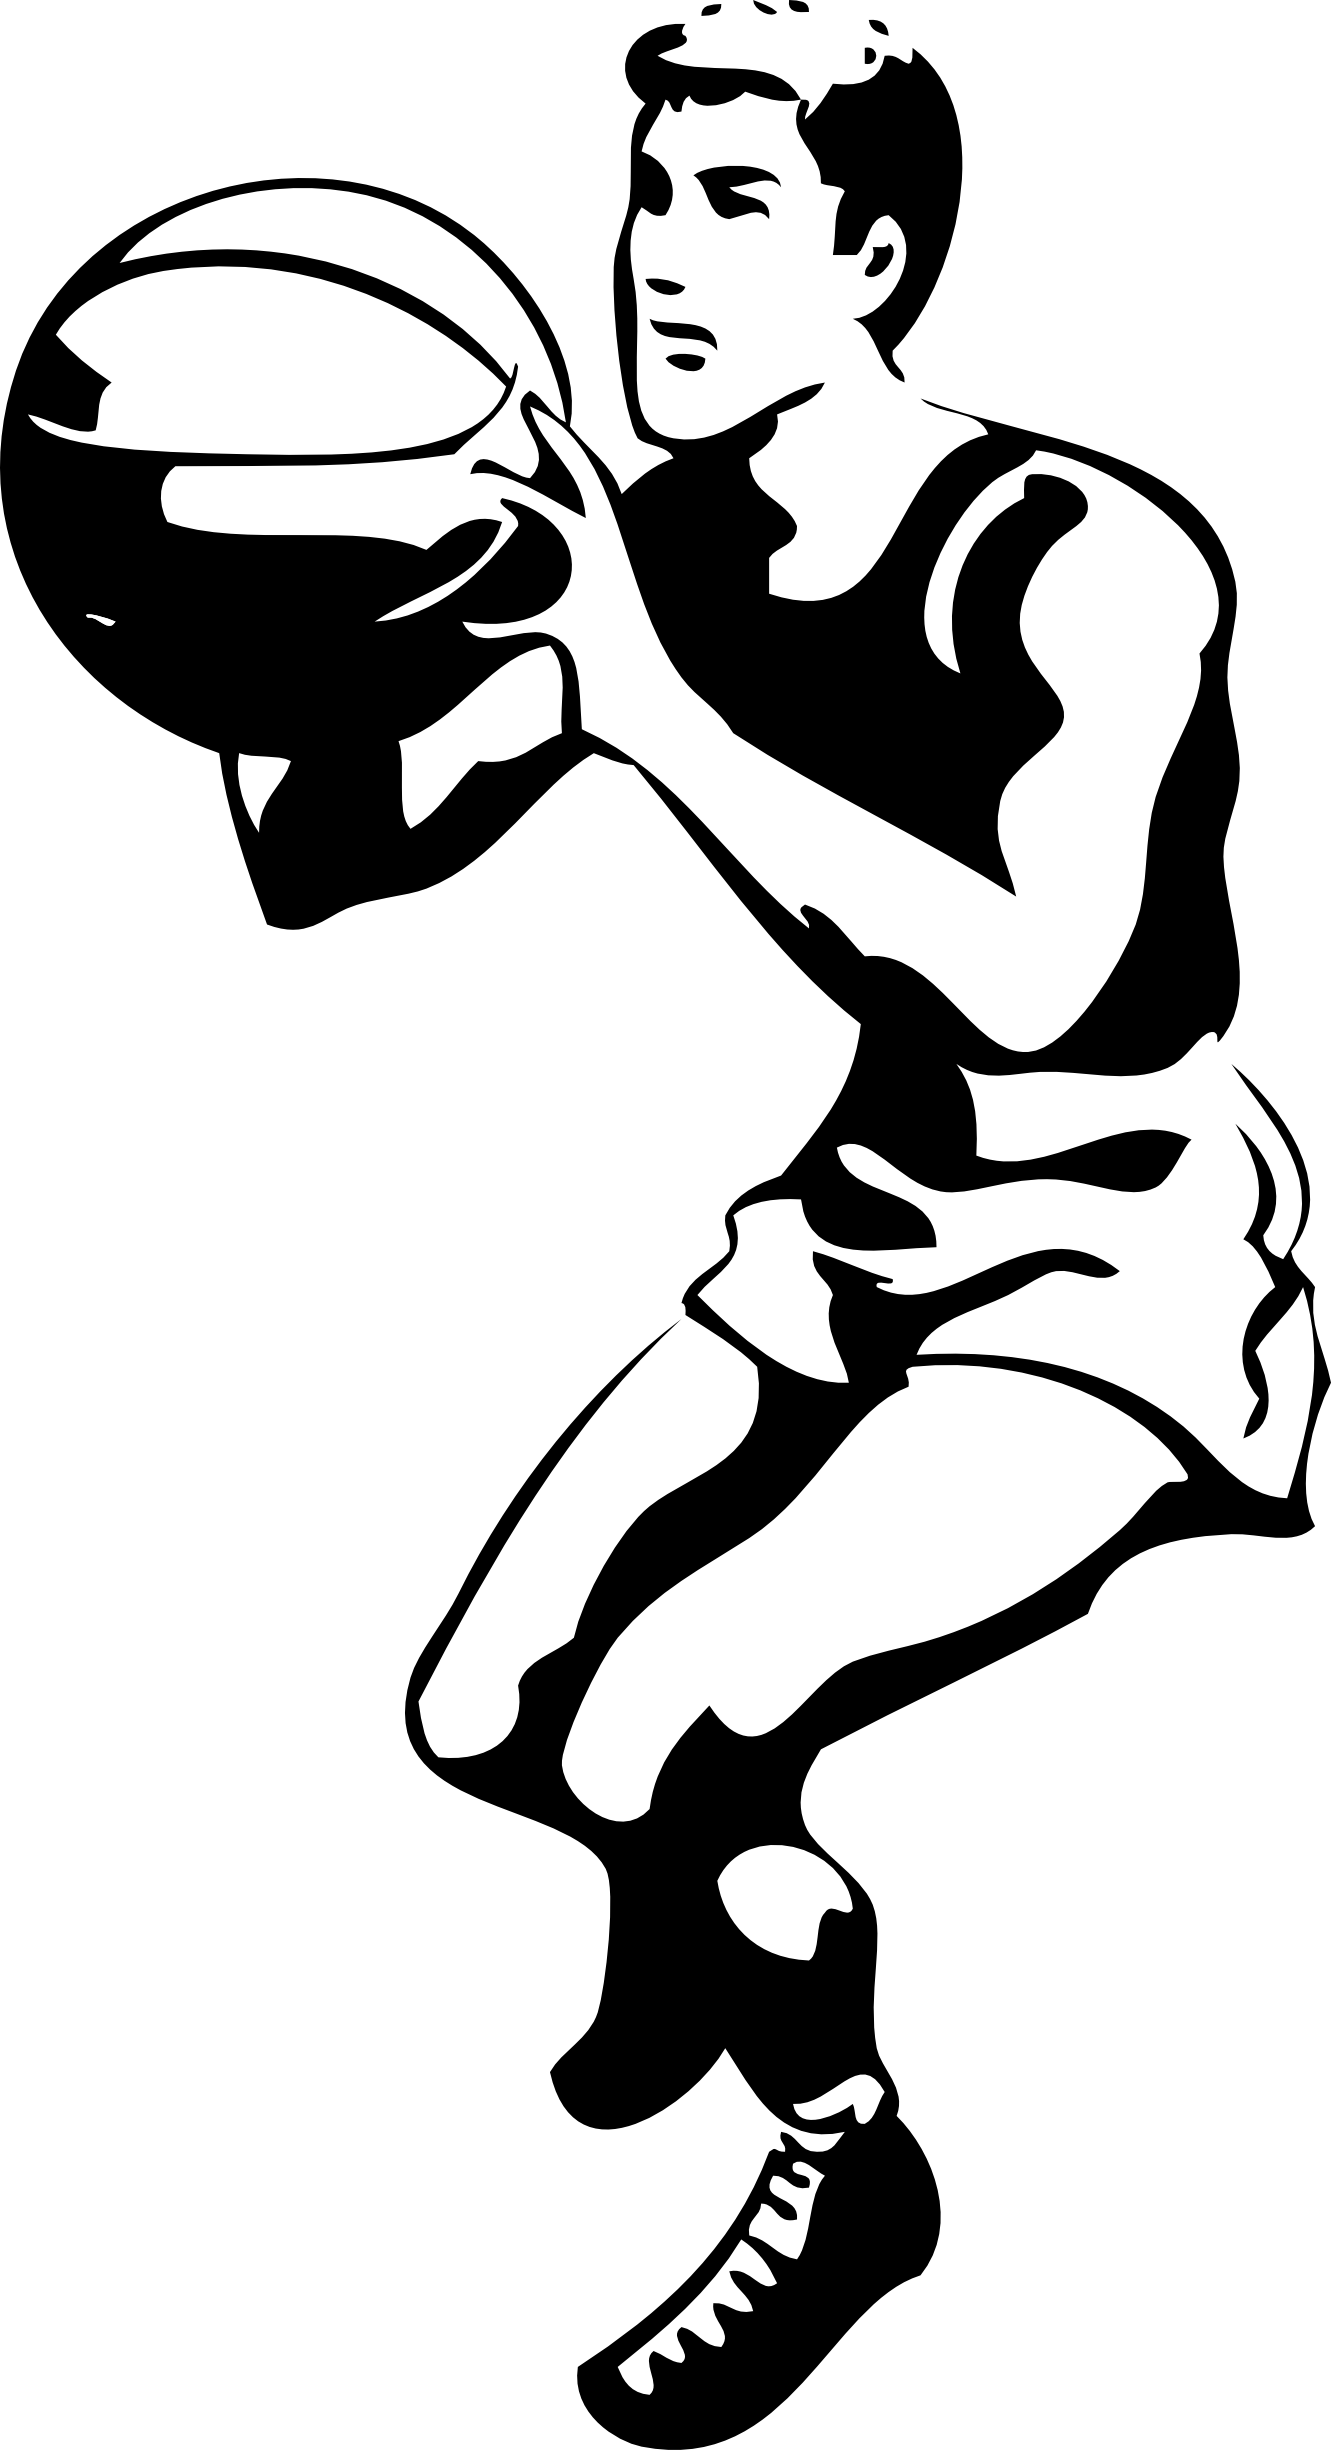 Basketball court clipart black and white clip stock Basketball Player Clipart Black And White | Clipart Panda - Free ... clip stock